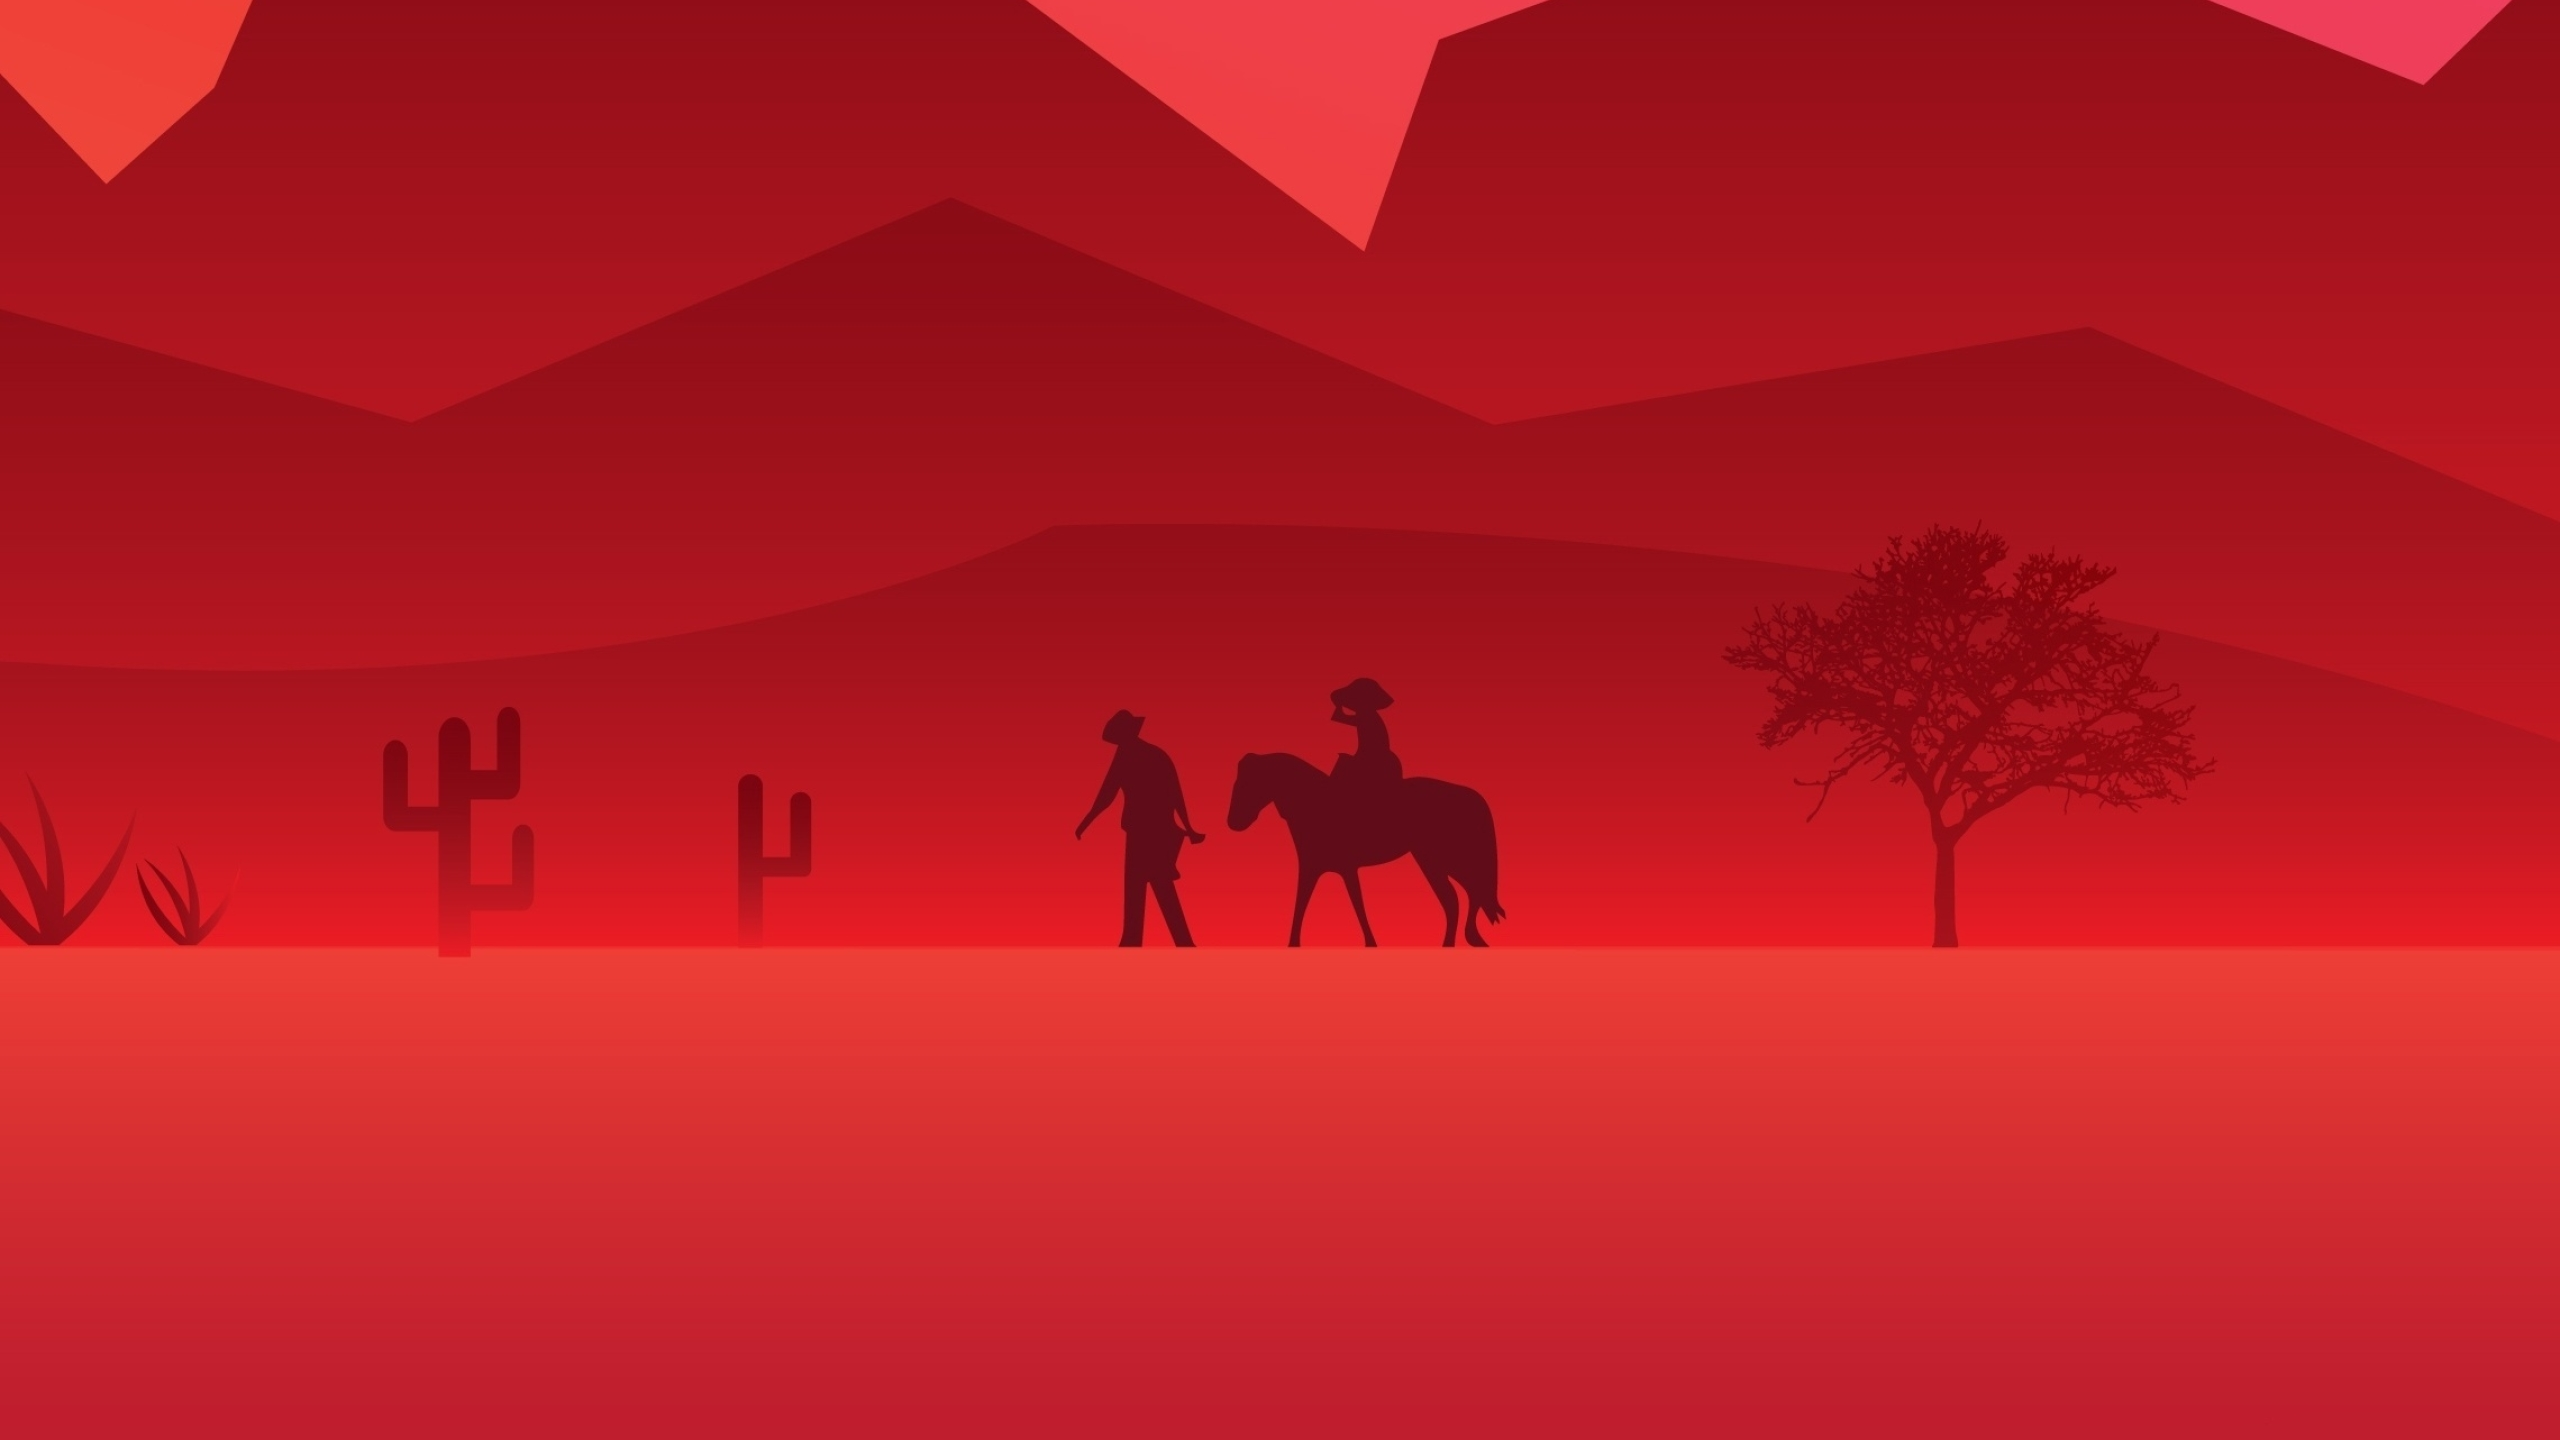 2560x1440 Red Dead Redemption 2 Minimal Game 19 1440p Resolution